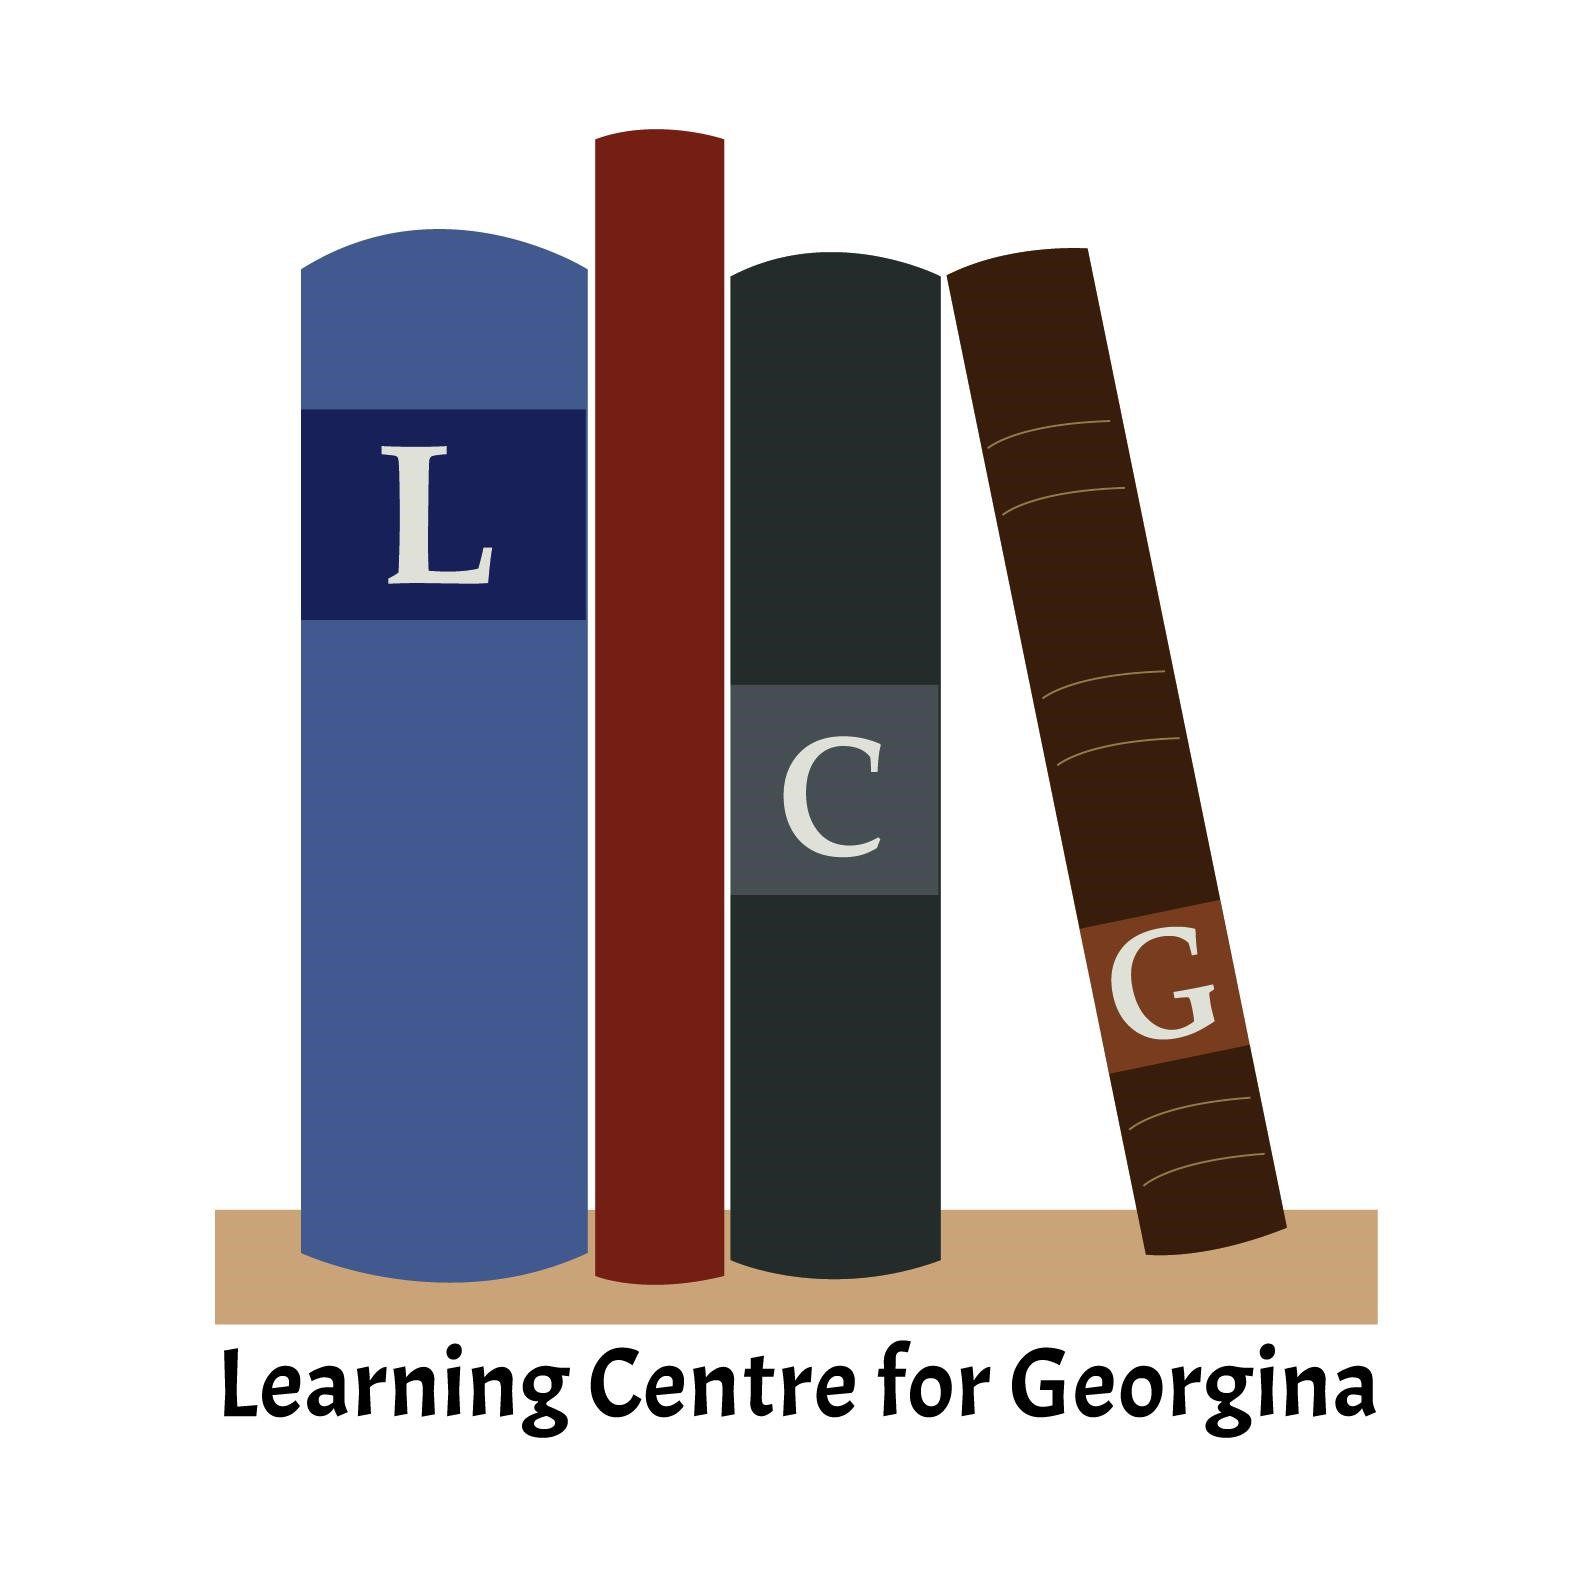 The Learning Centre for Georgina